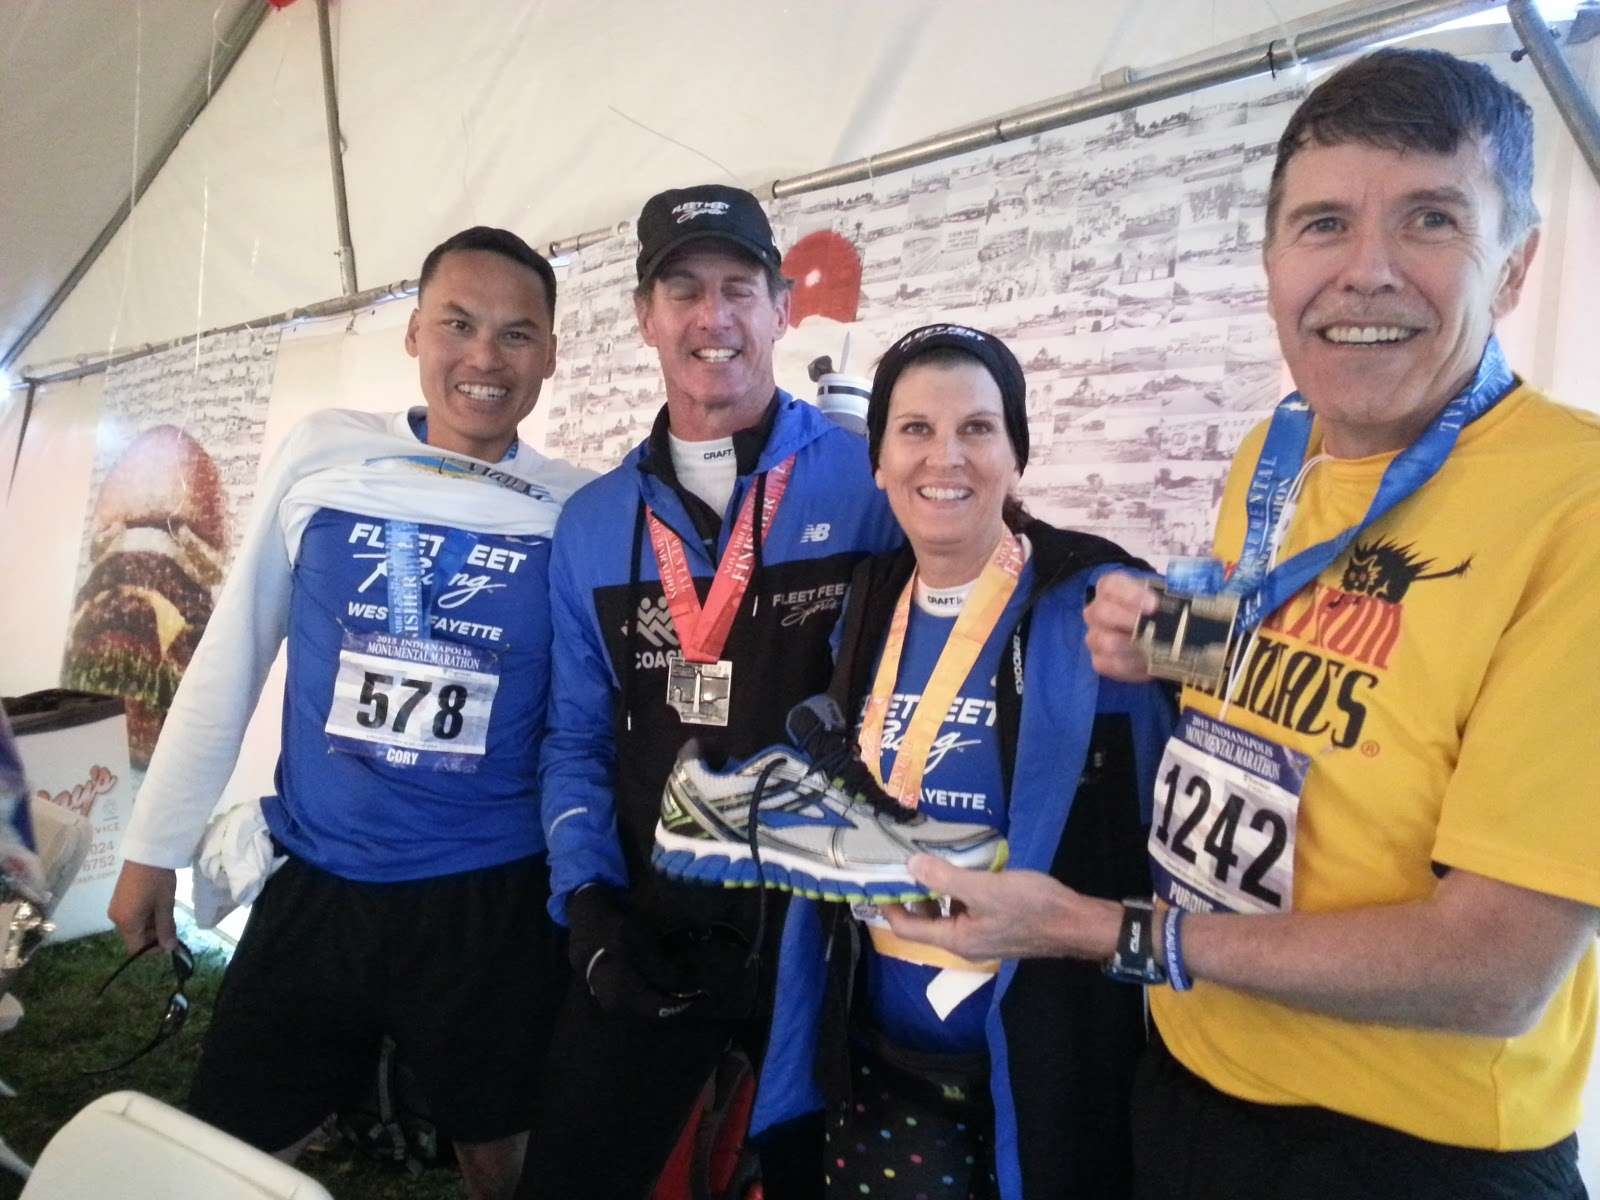 Shortly thereafter michelle came across the finish line in 4 15 a 50 minute pr over the marathon she ran in carmel in april she was also thrilled